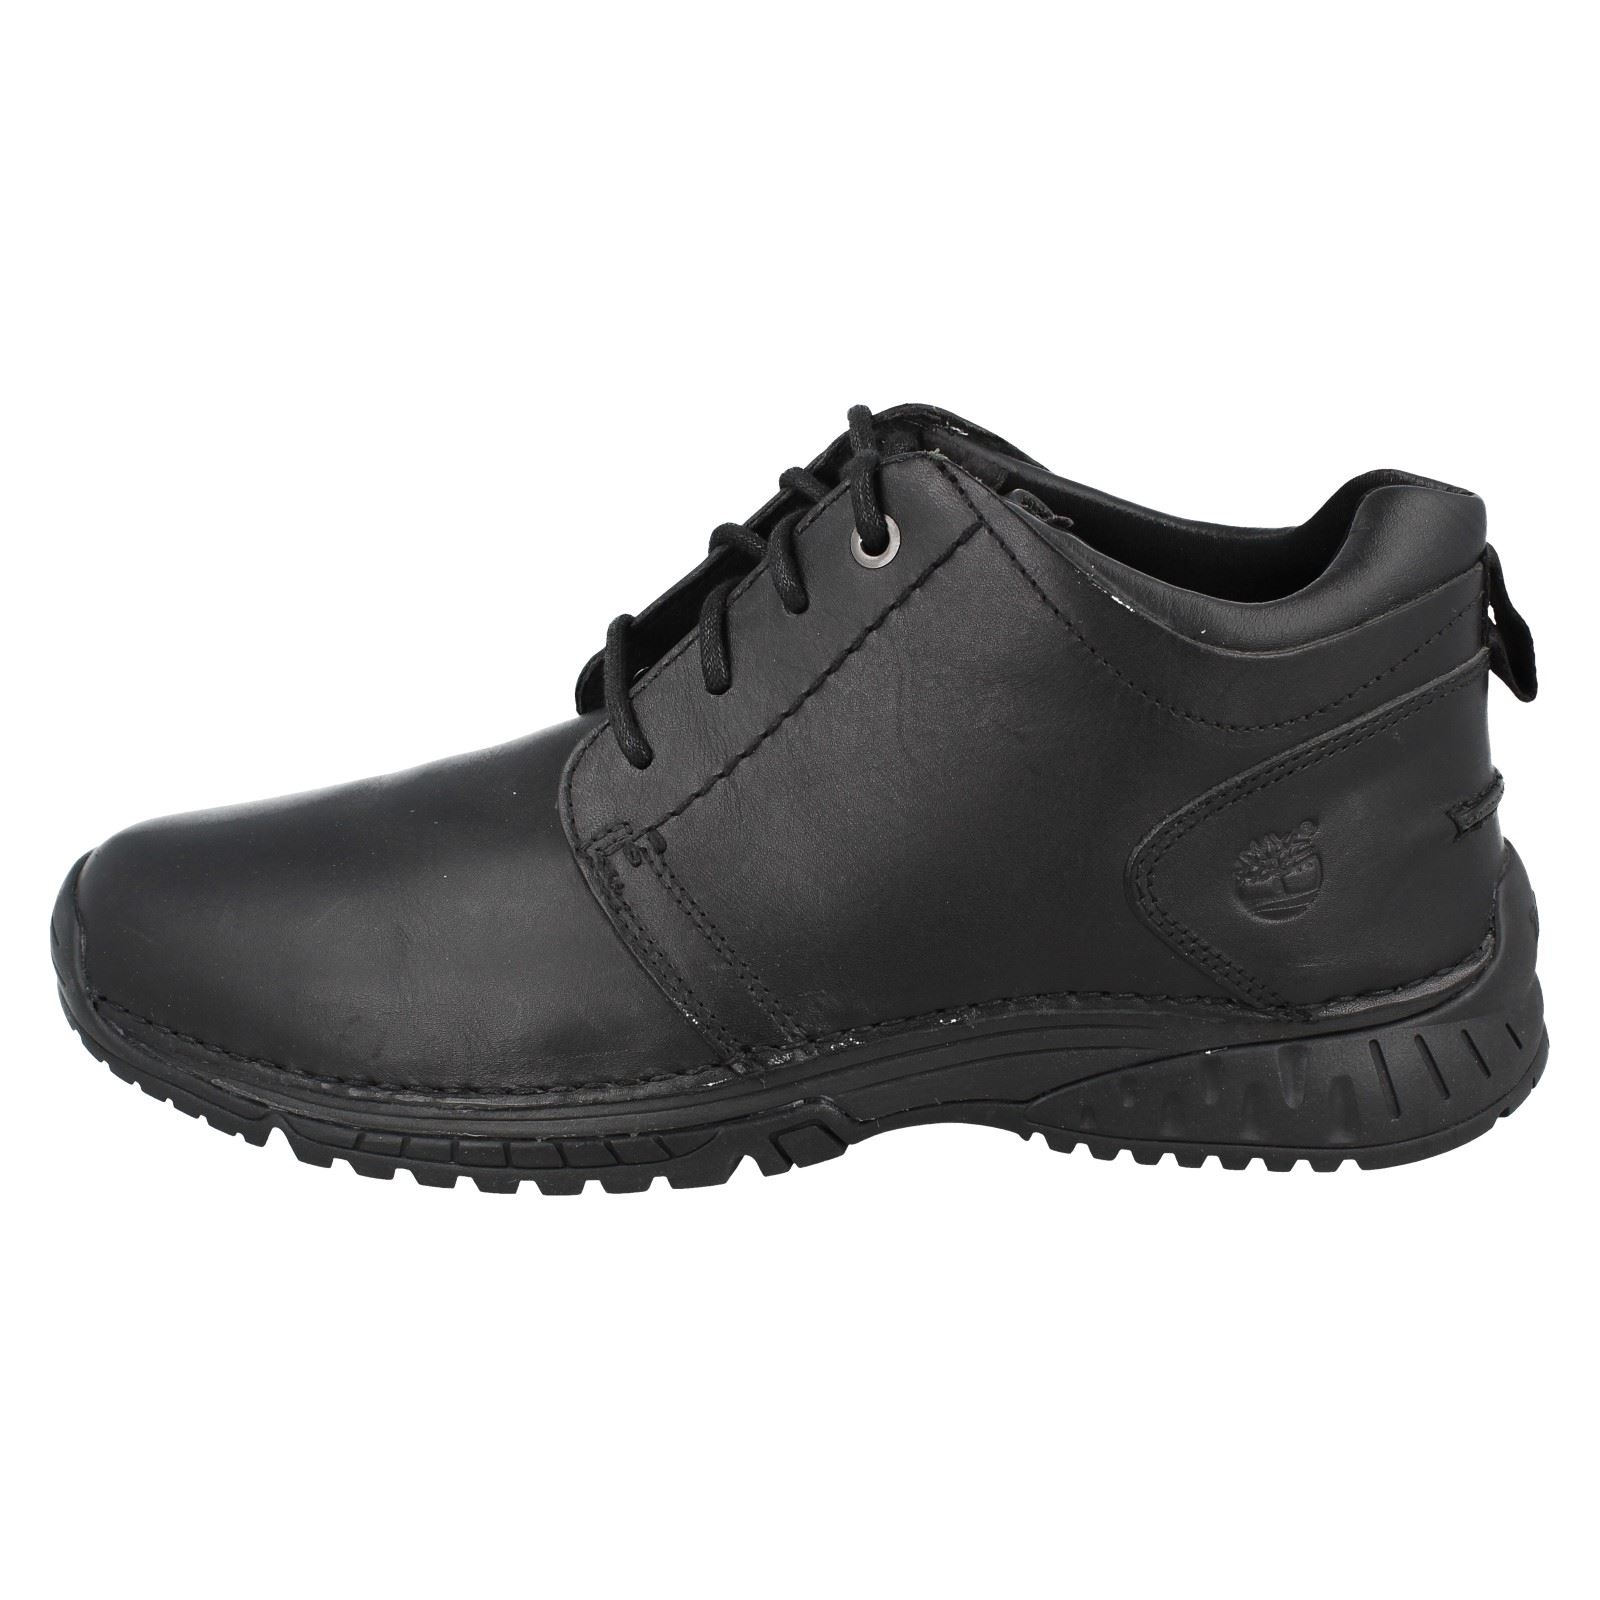 Men's Black Endur 77562 City Boots Ptc Timberland Ankle 0Hqrw1S0